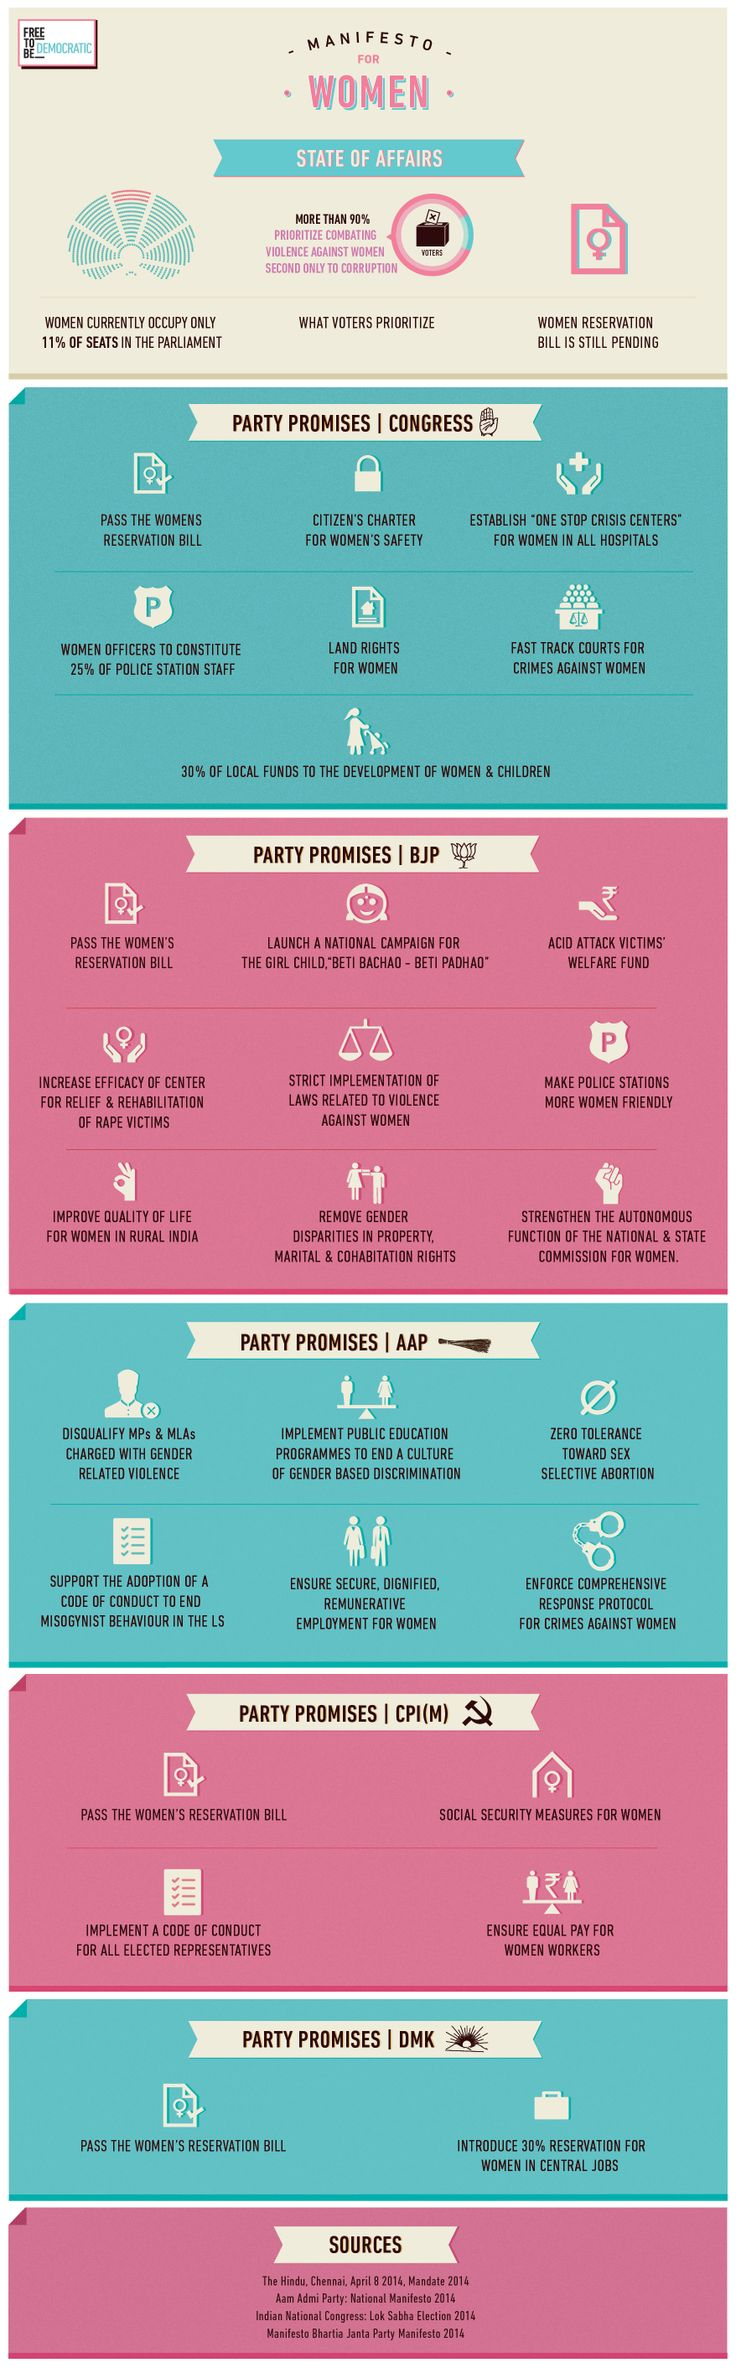 With the rate of violence against women on a rise in India. It's important to know what steps our leaders are willing to take in 2014 to make a change. Here's a highlight of what major political parties are promising to do to make our nation more conducive to women.